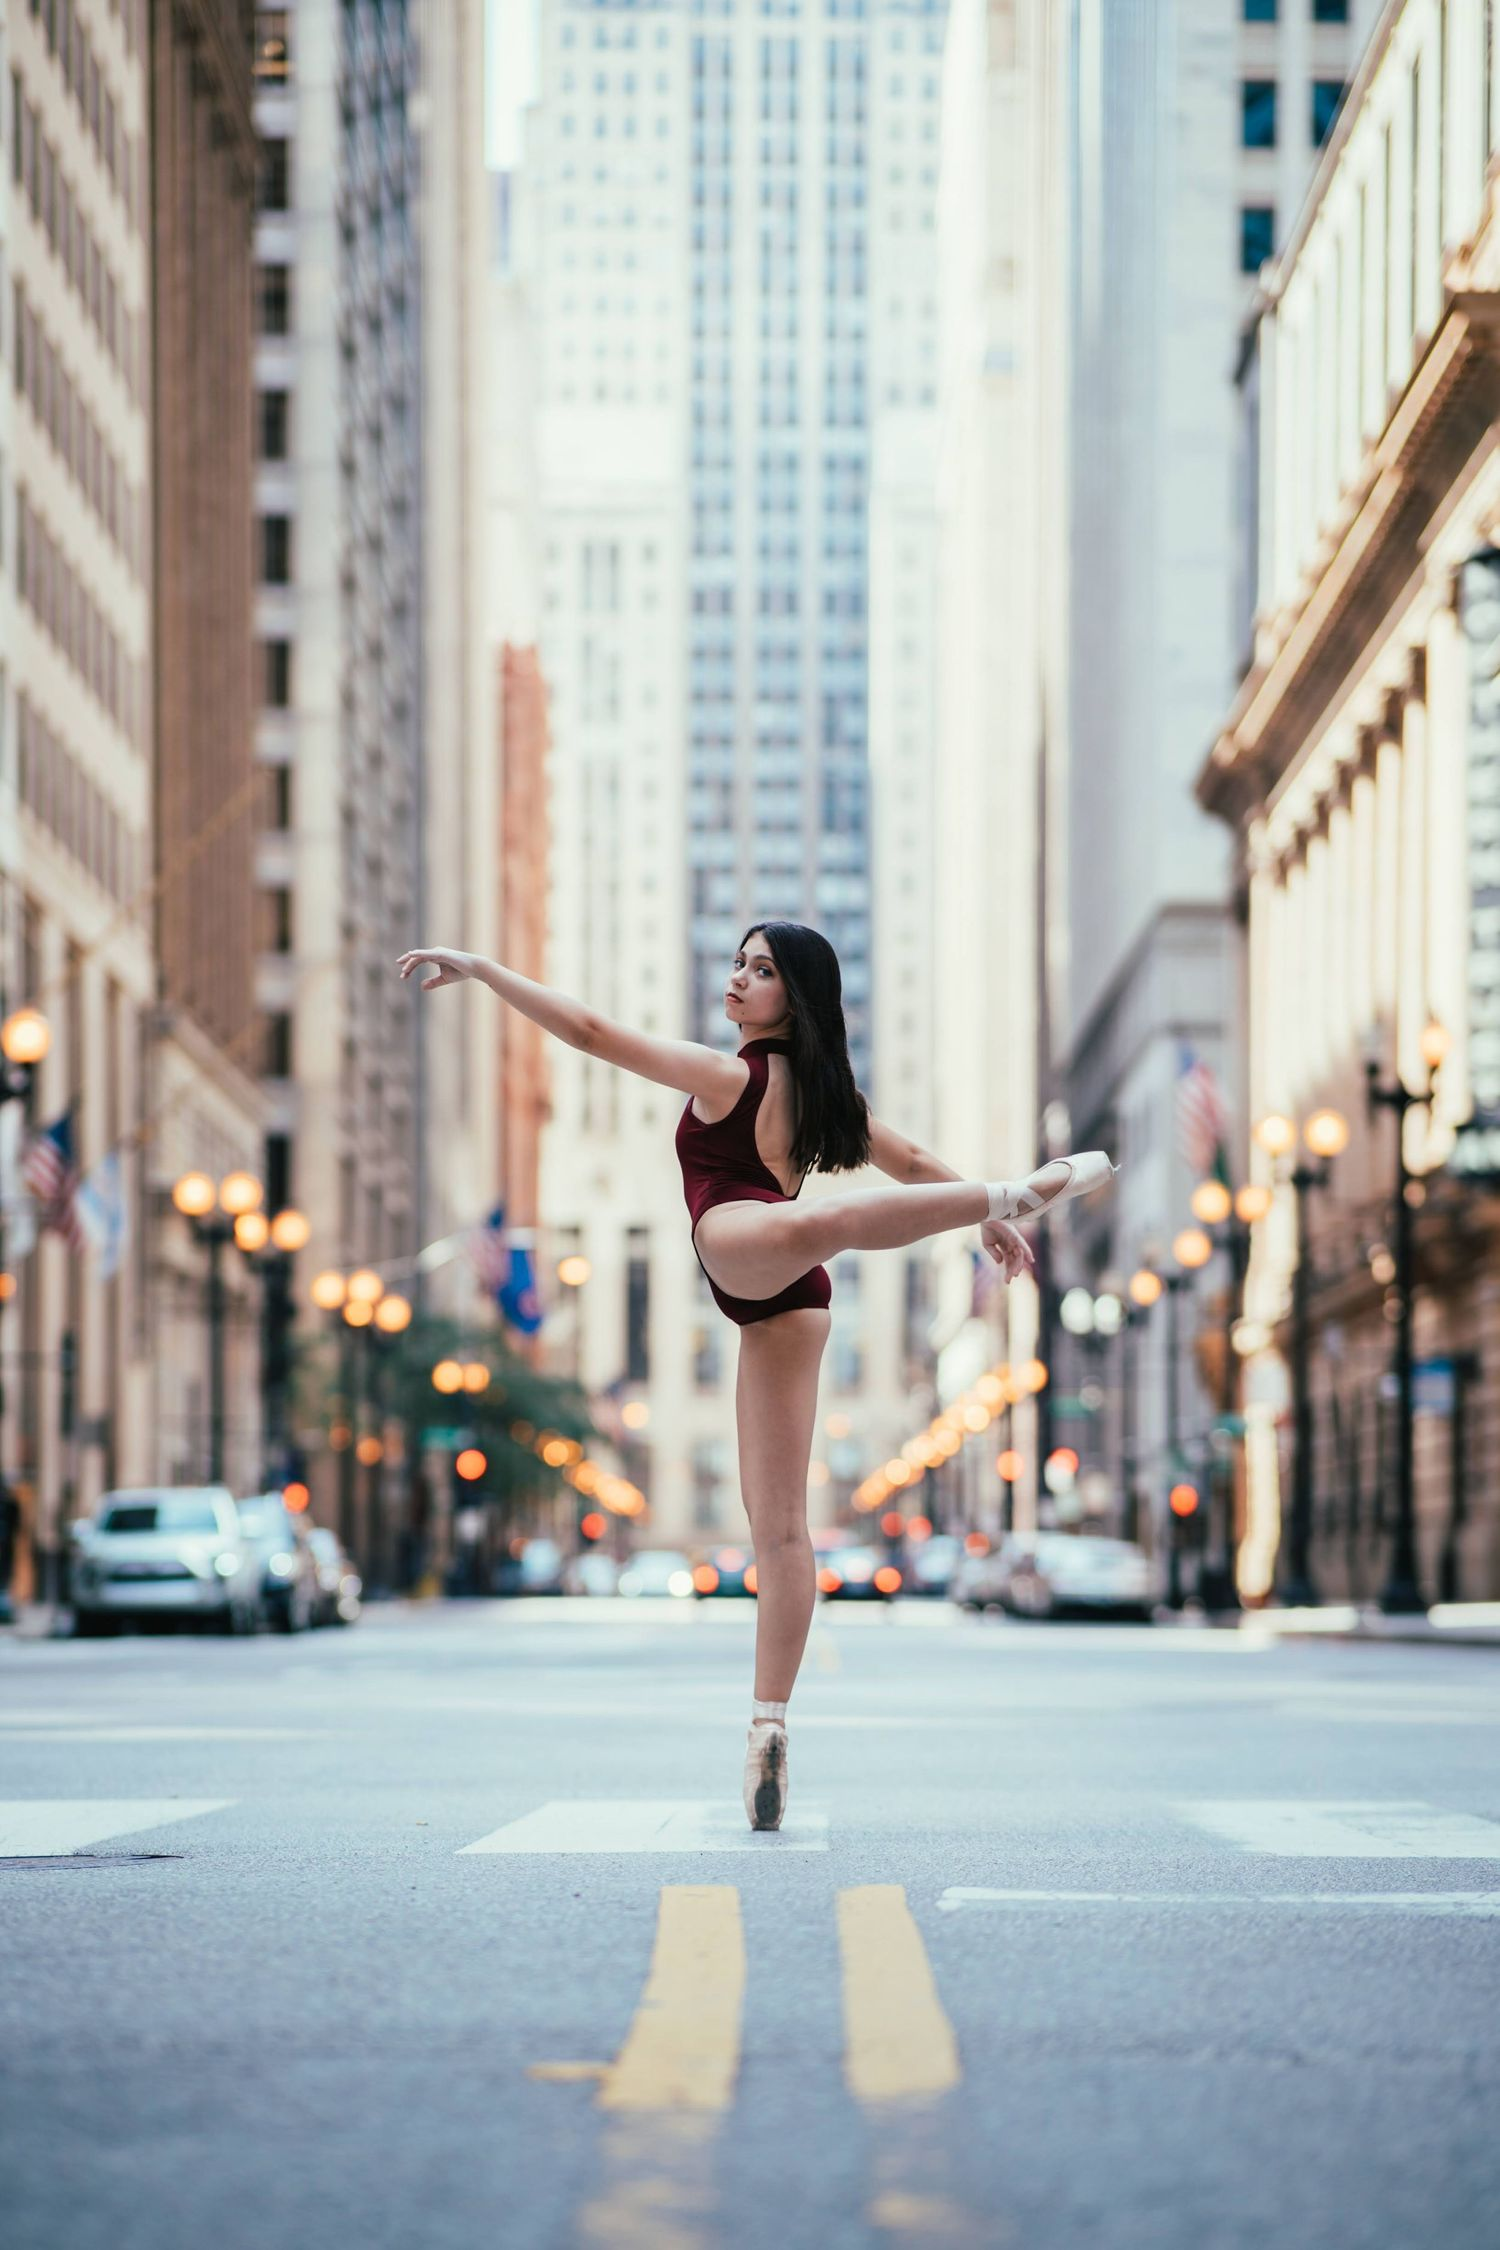 chicago dancing photography on the street